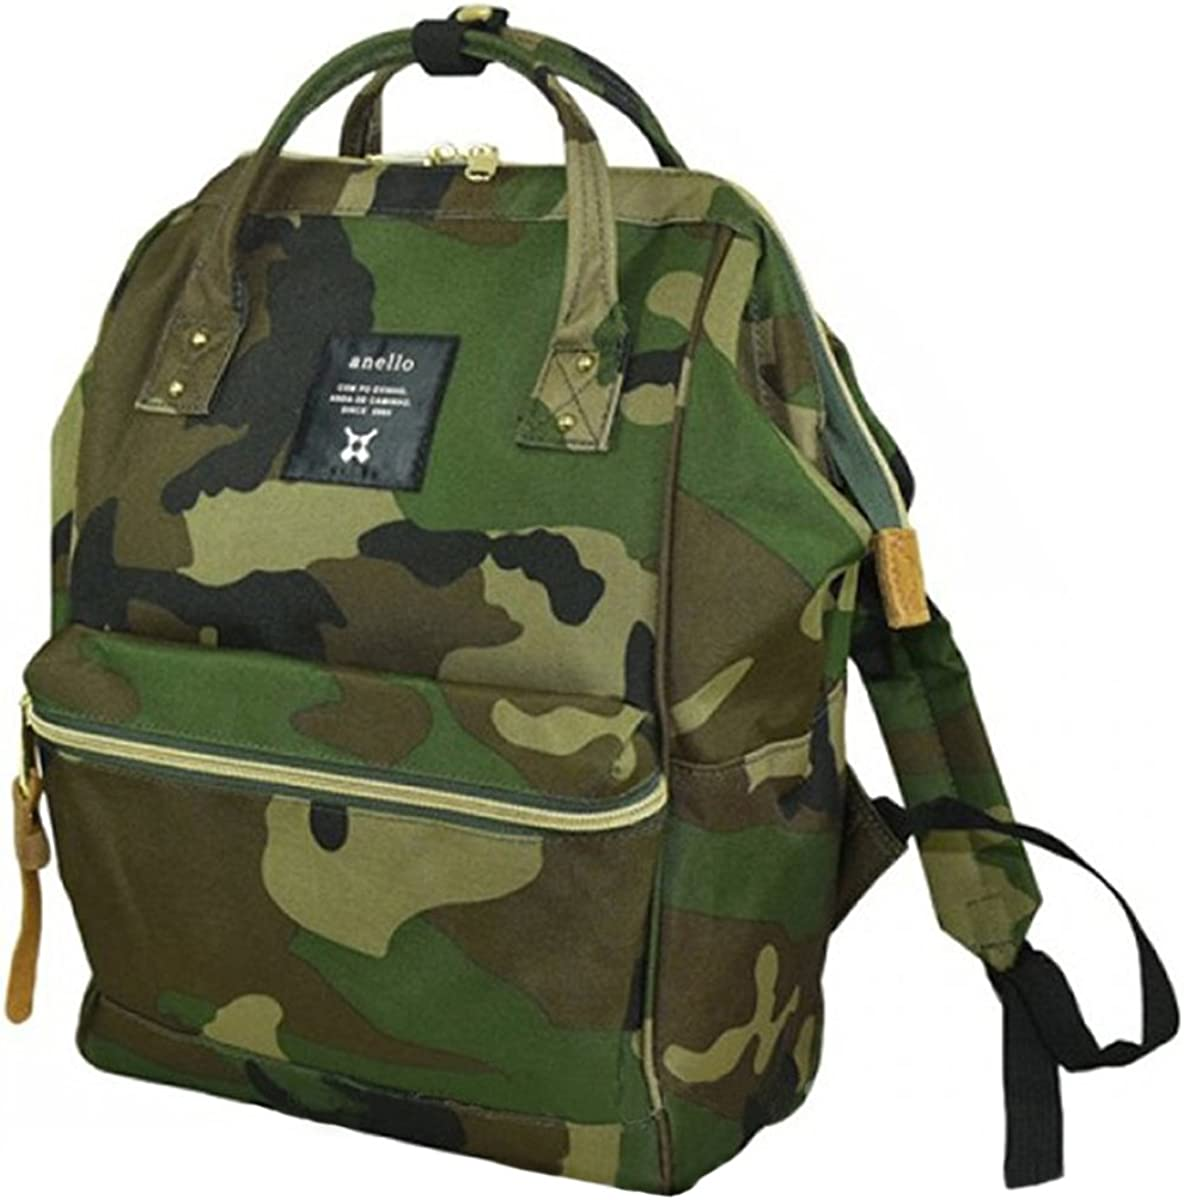 Japan Anello Backpack Unisex MINI SMALL CAMO Rucksack Waterproof Canvas Campus Bag